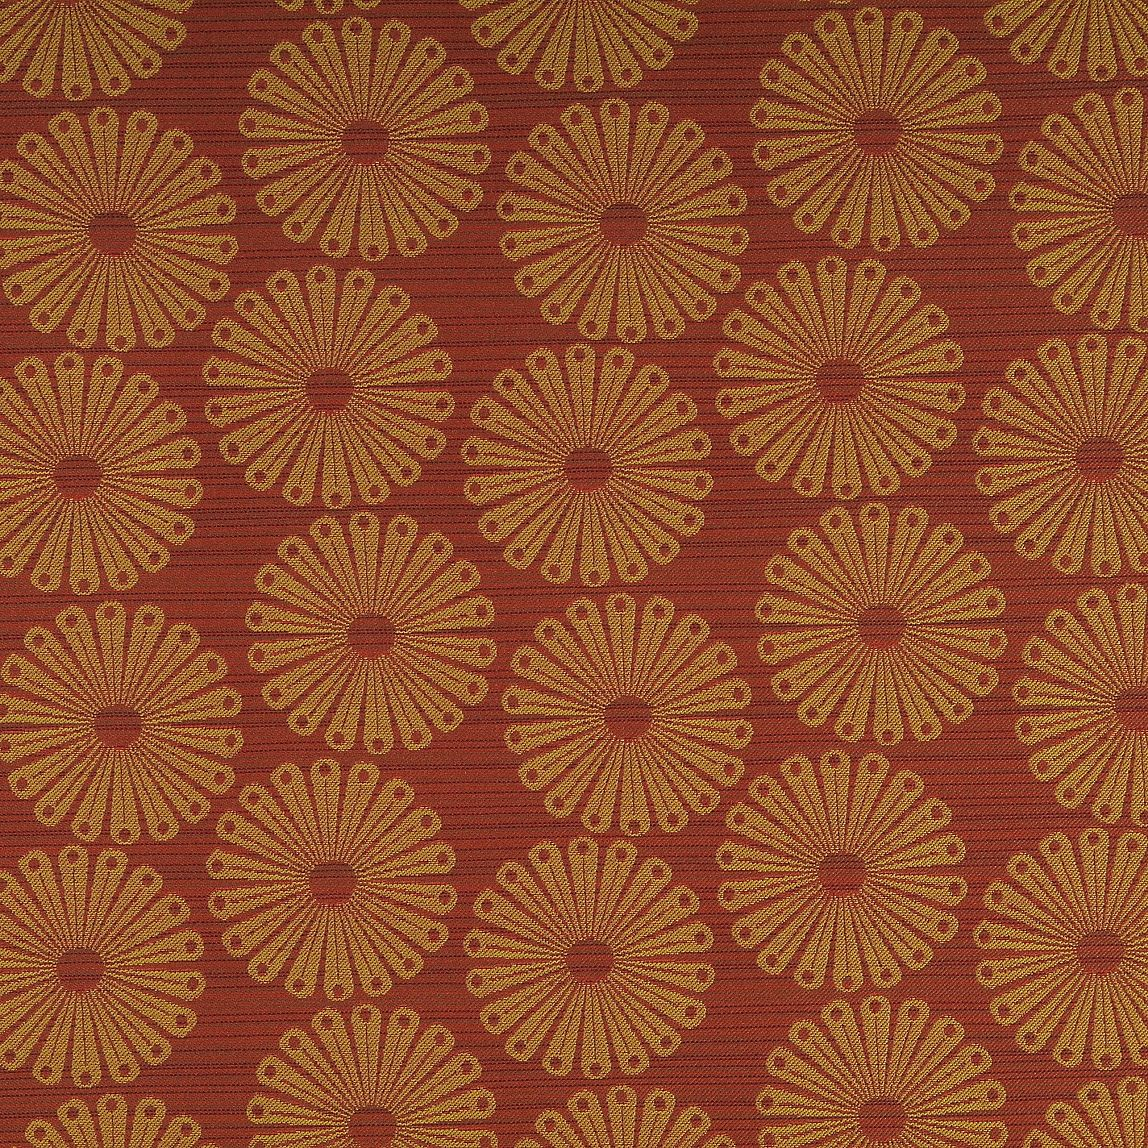 Sunburst Red Delicious Swatch